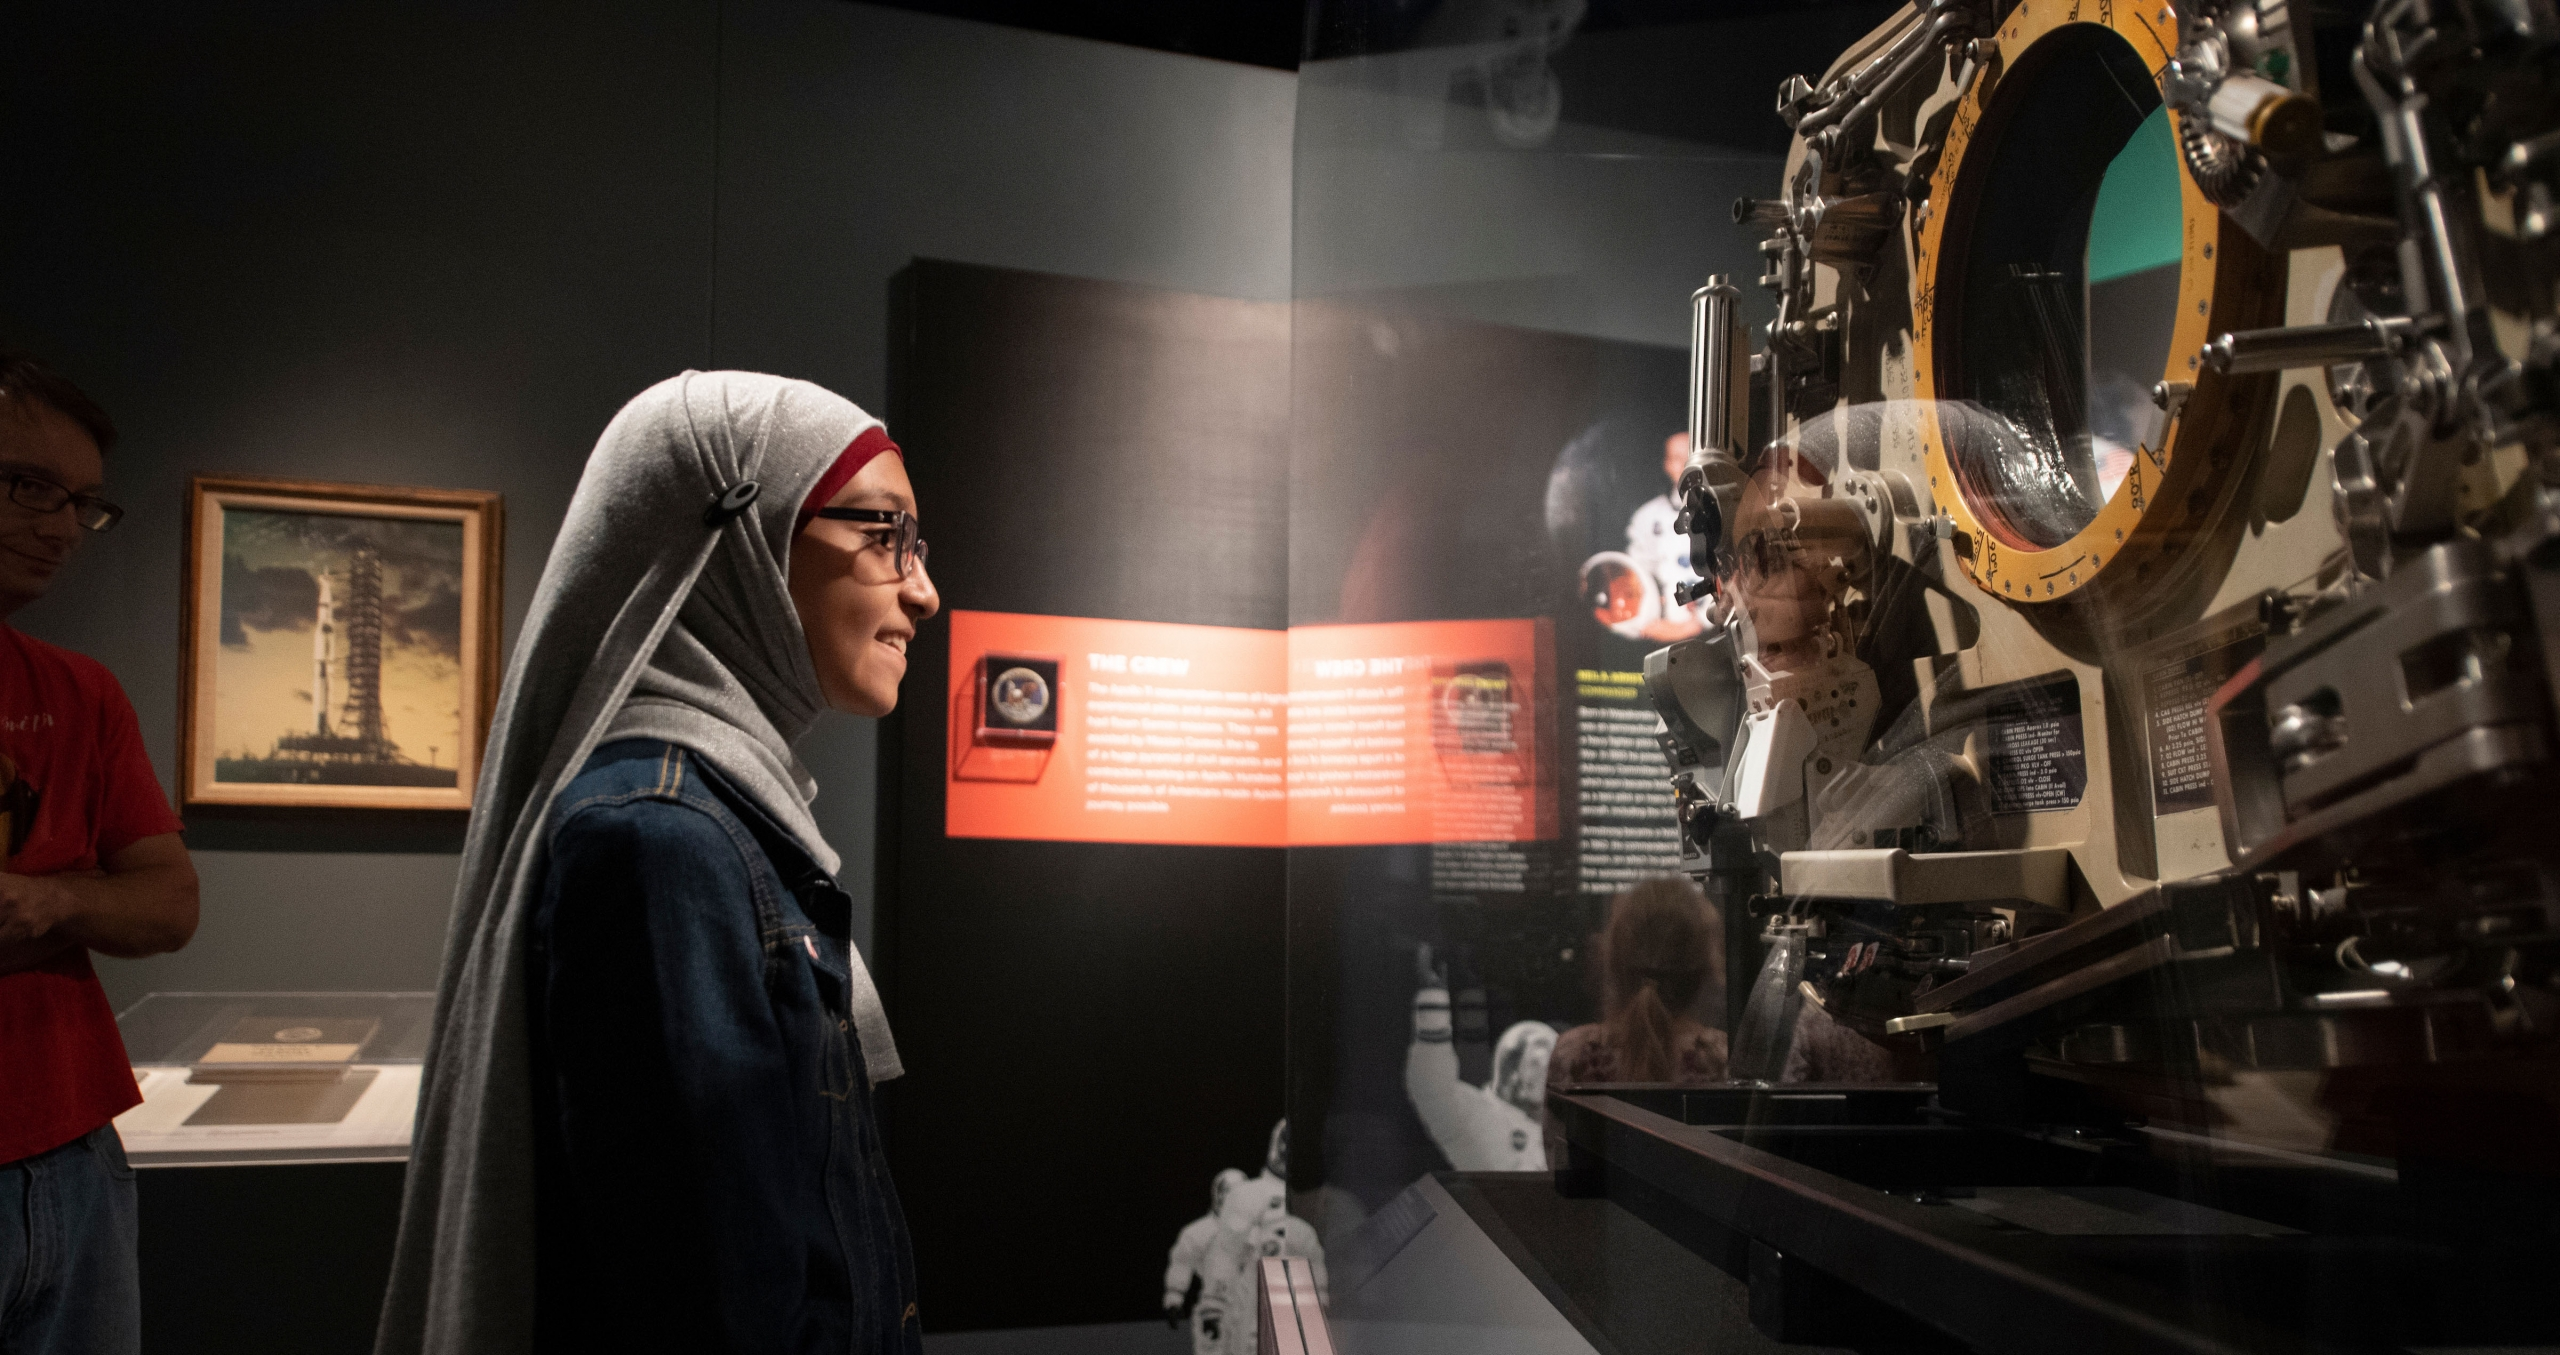 Female museum visitor looking at the Apollo 11 capsule